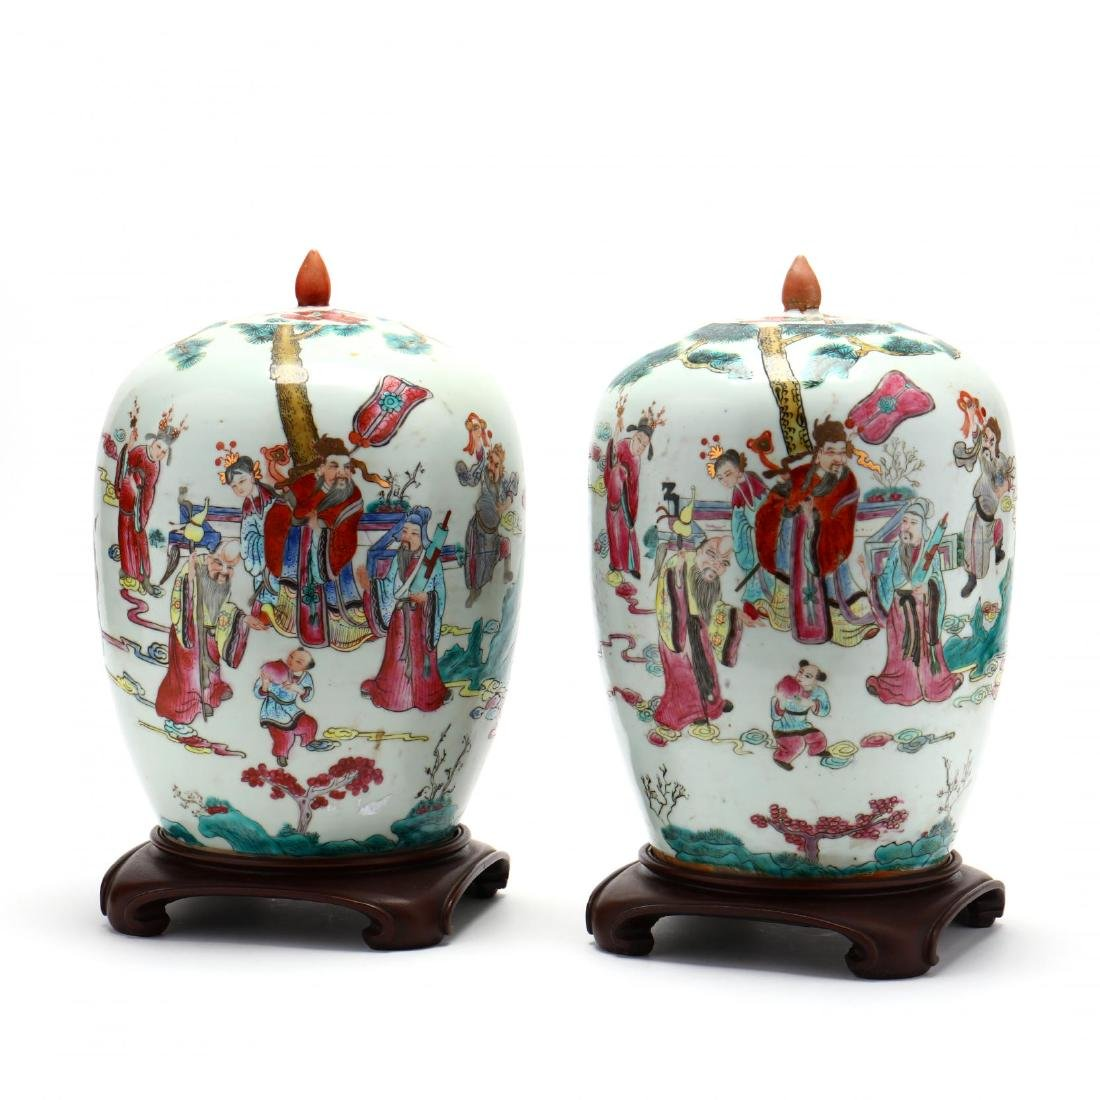 Pair of Chinese Export Porcelain Lidded Jars